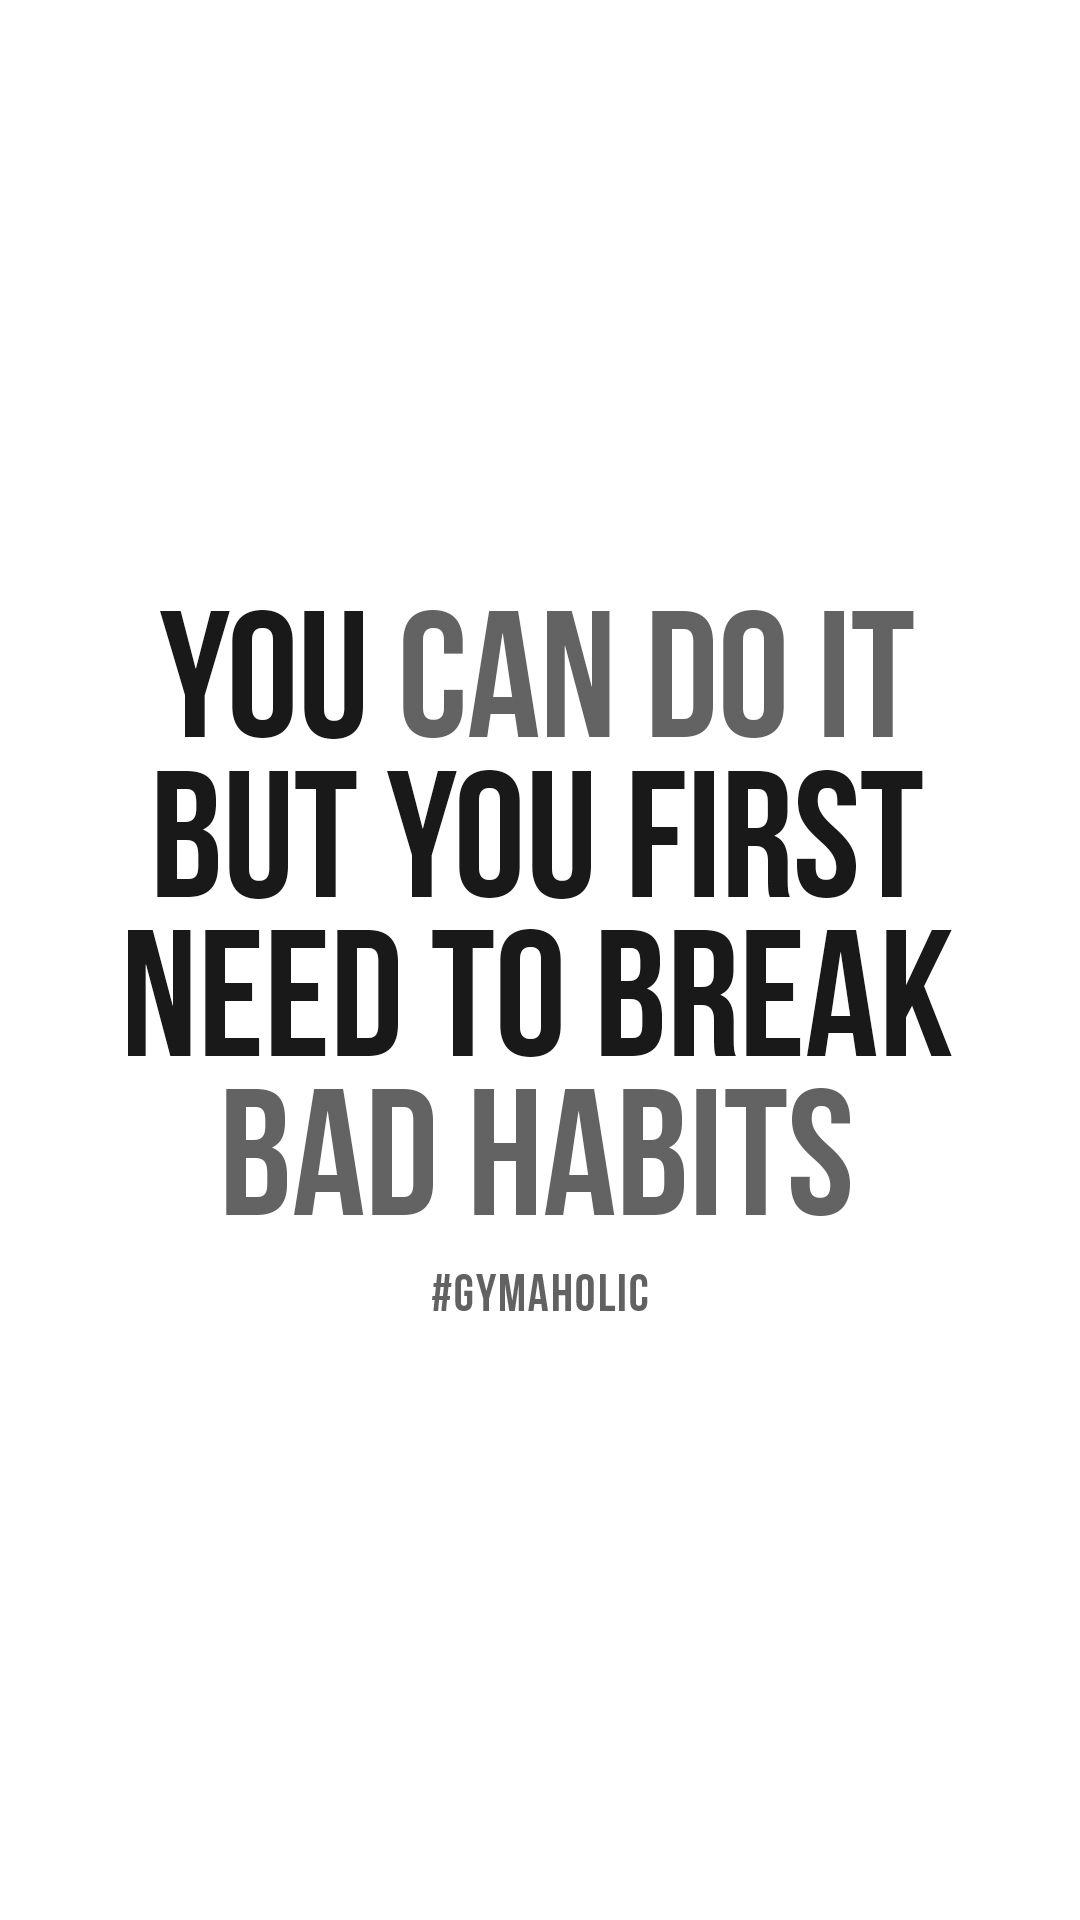 You can do it, but you first need to break bad habits.